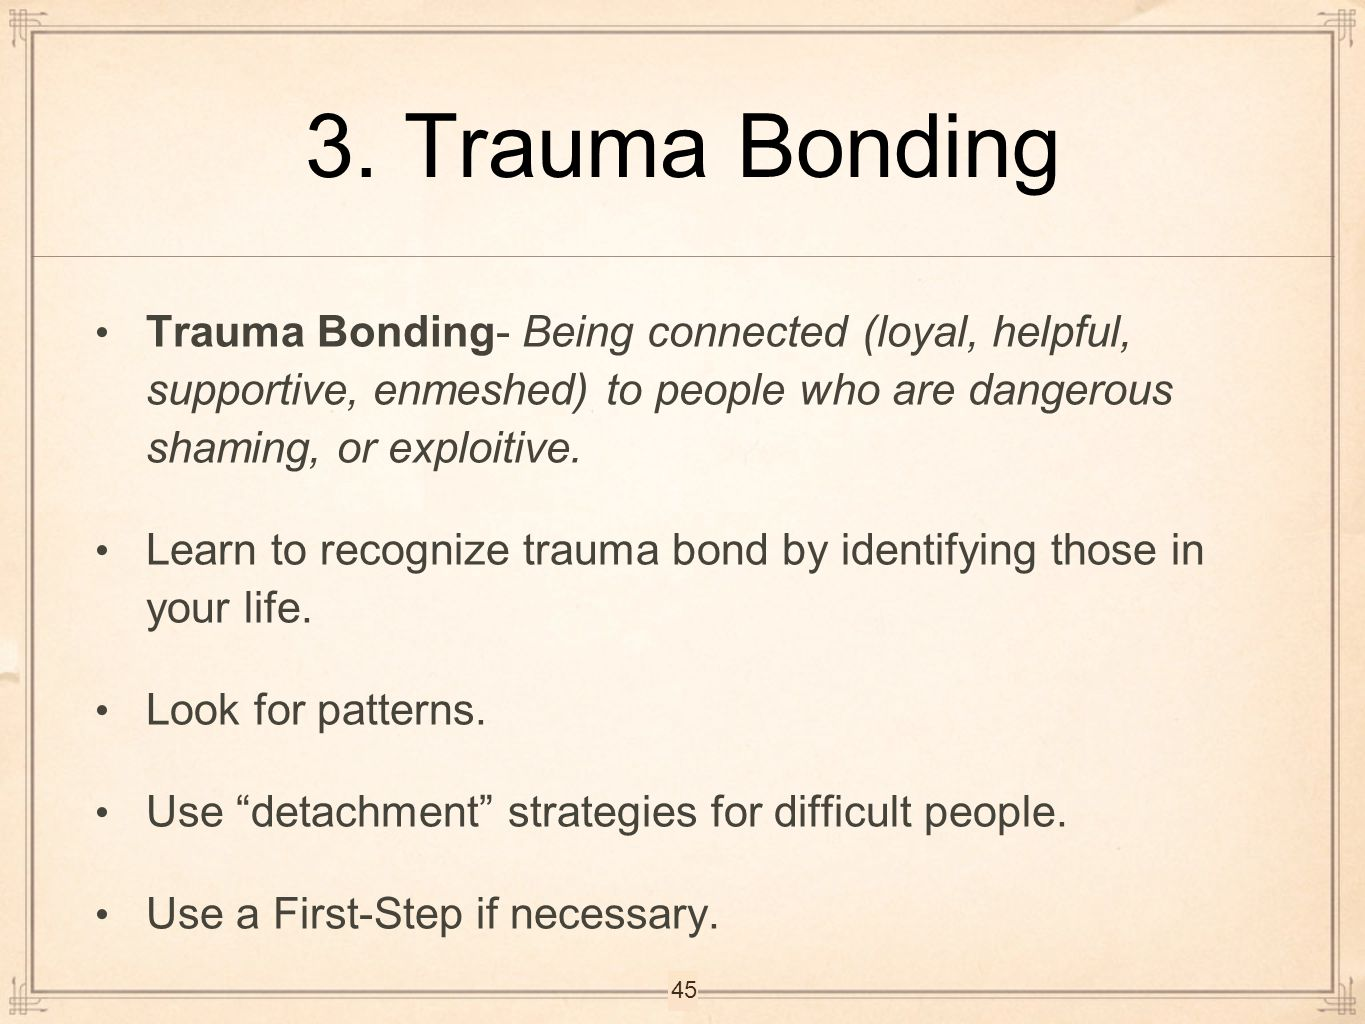 3. Trauma Bonding Trauma Bonding- Being connected (loyal, helpful, supportive, enmeshed) to people who are dangerous shaming, or exploitive. Learn to